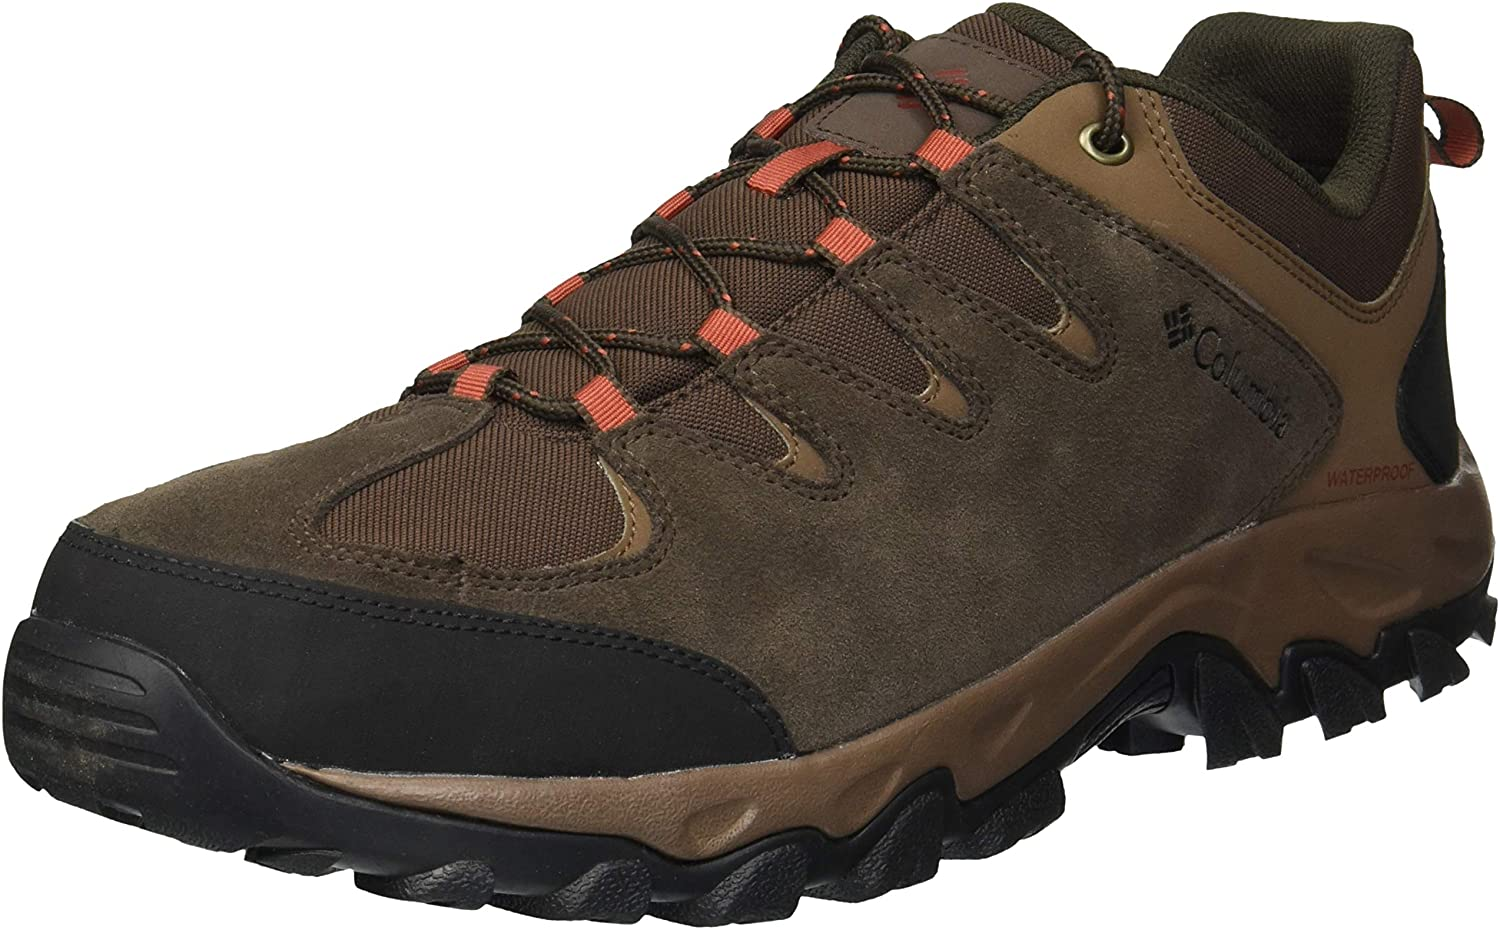 Columbia Men's Buxton Peak Waterproof Hiking Shoe, Breathable, High-Traction Grip